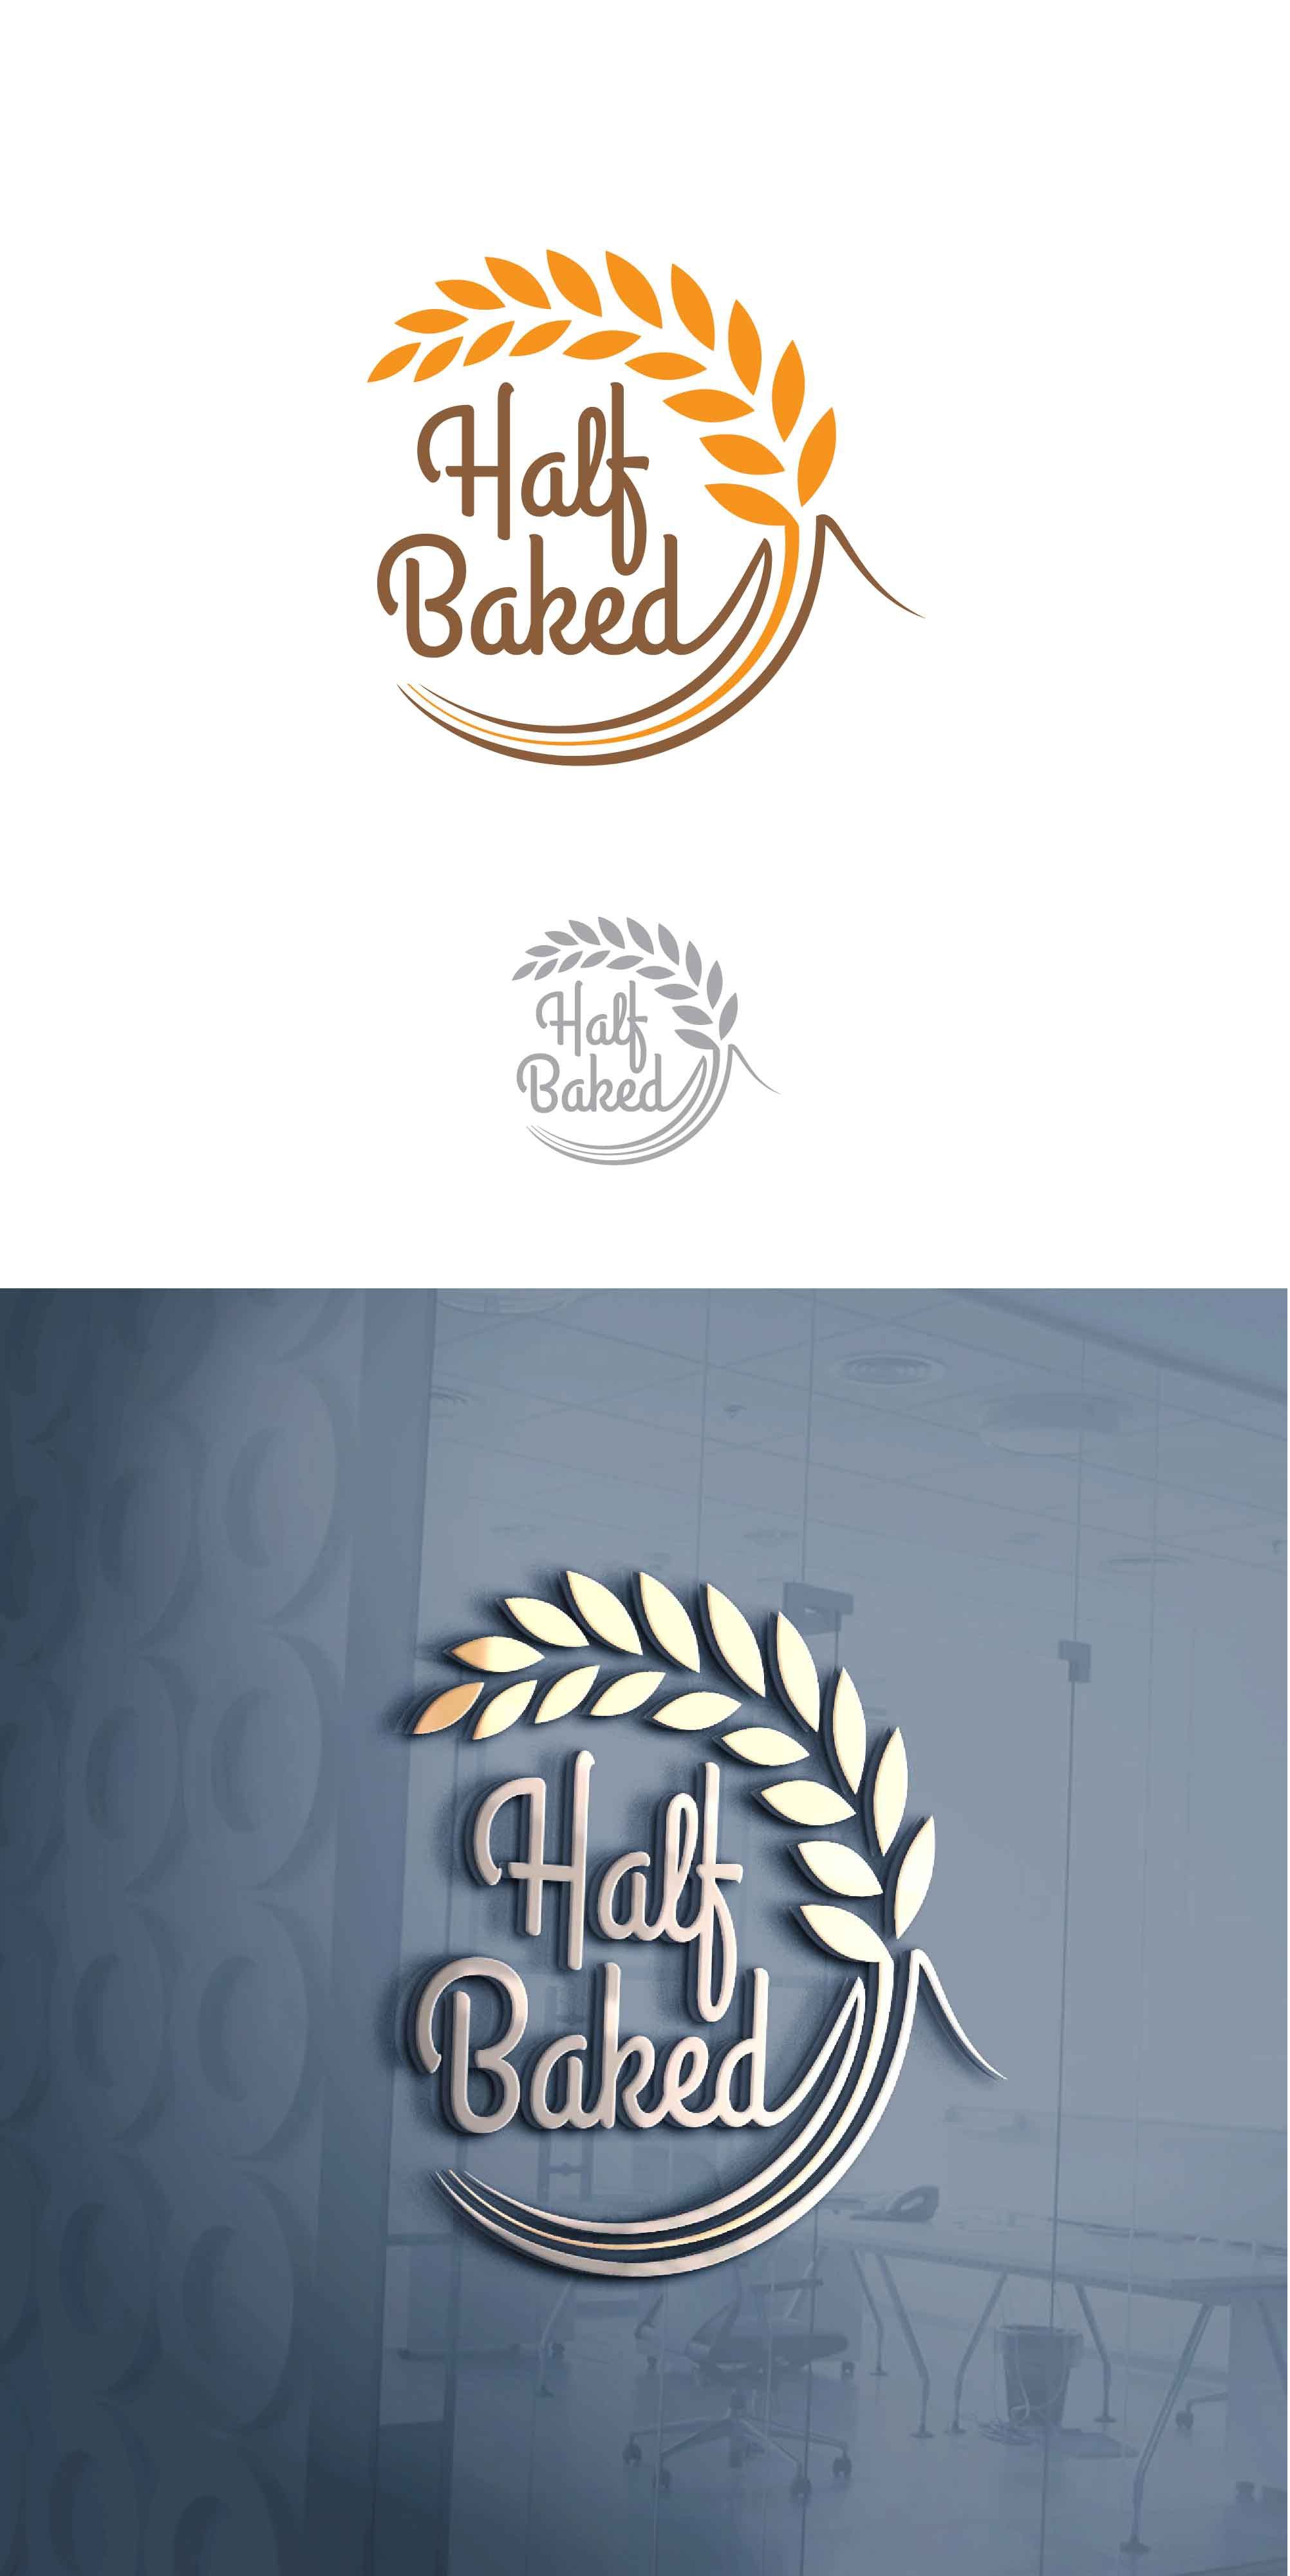 Logo design:Half Baked, a youthful aesthetic cafe with a space to inspire spontaneity and excitement